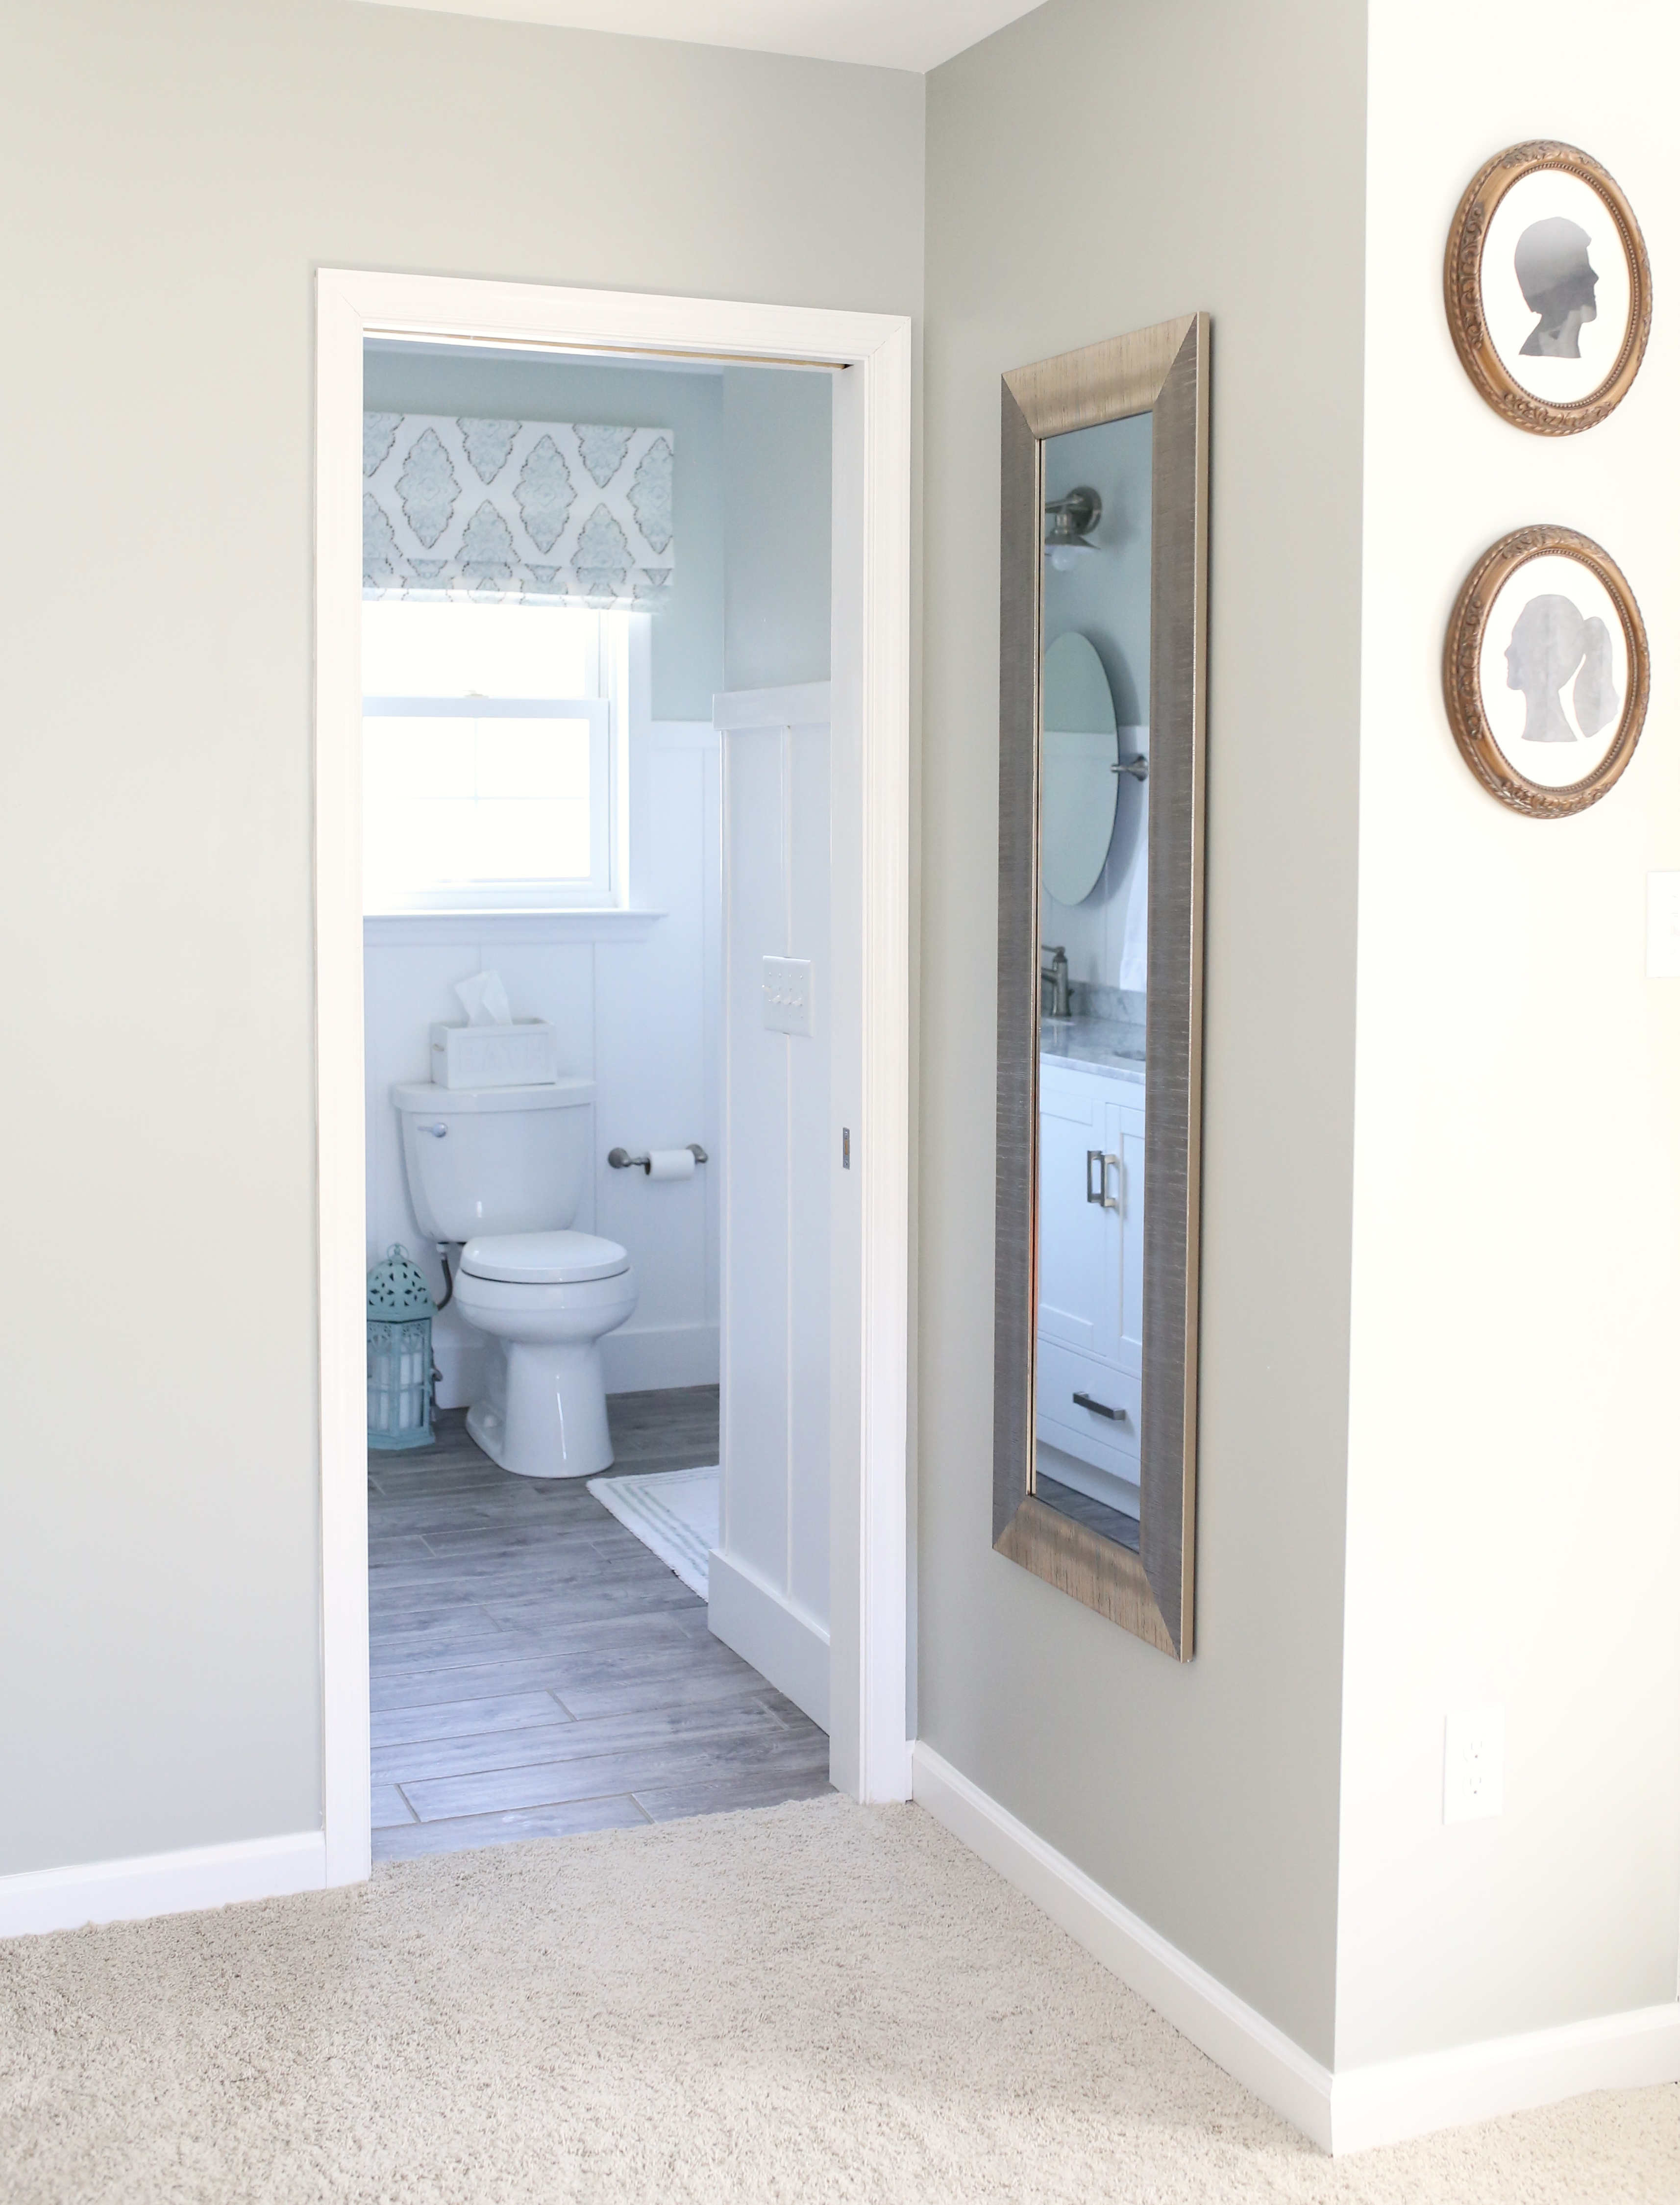 Master Bathroom Remodel - welcometothemousehouse.com